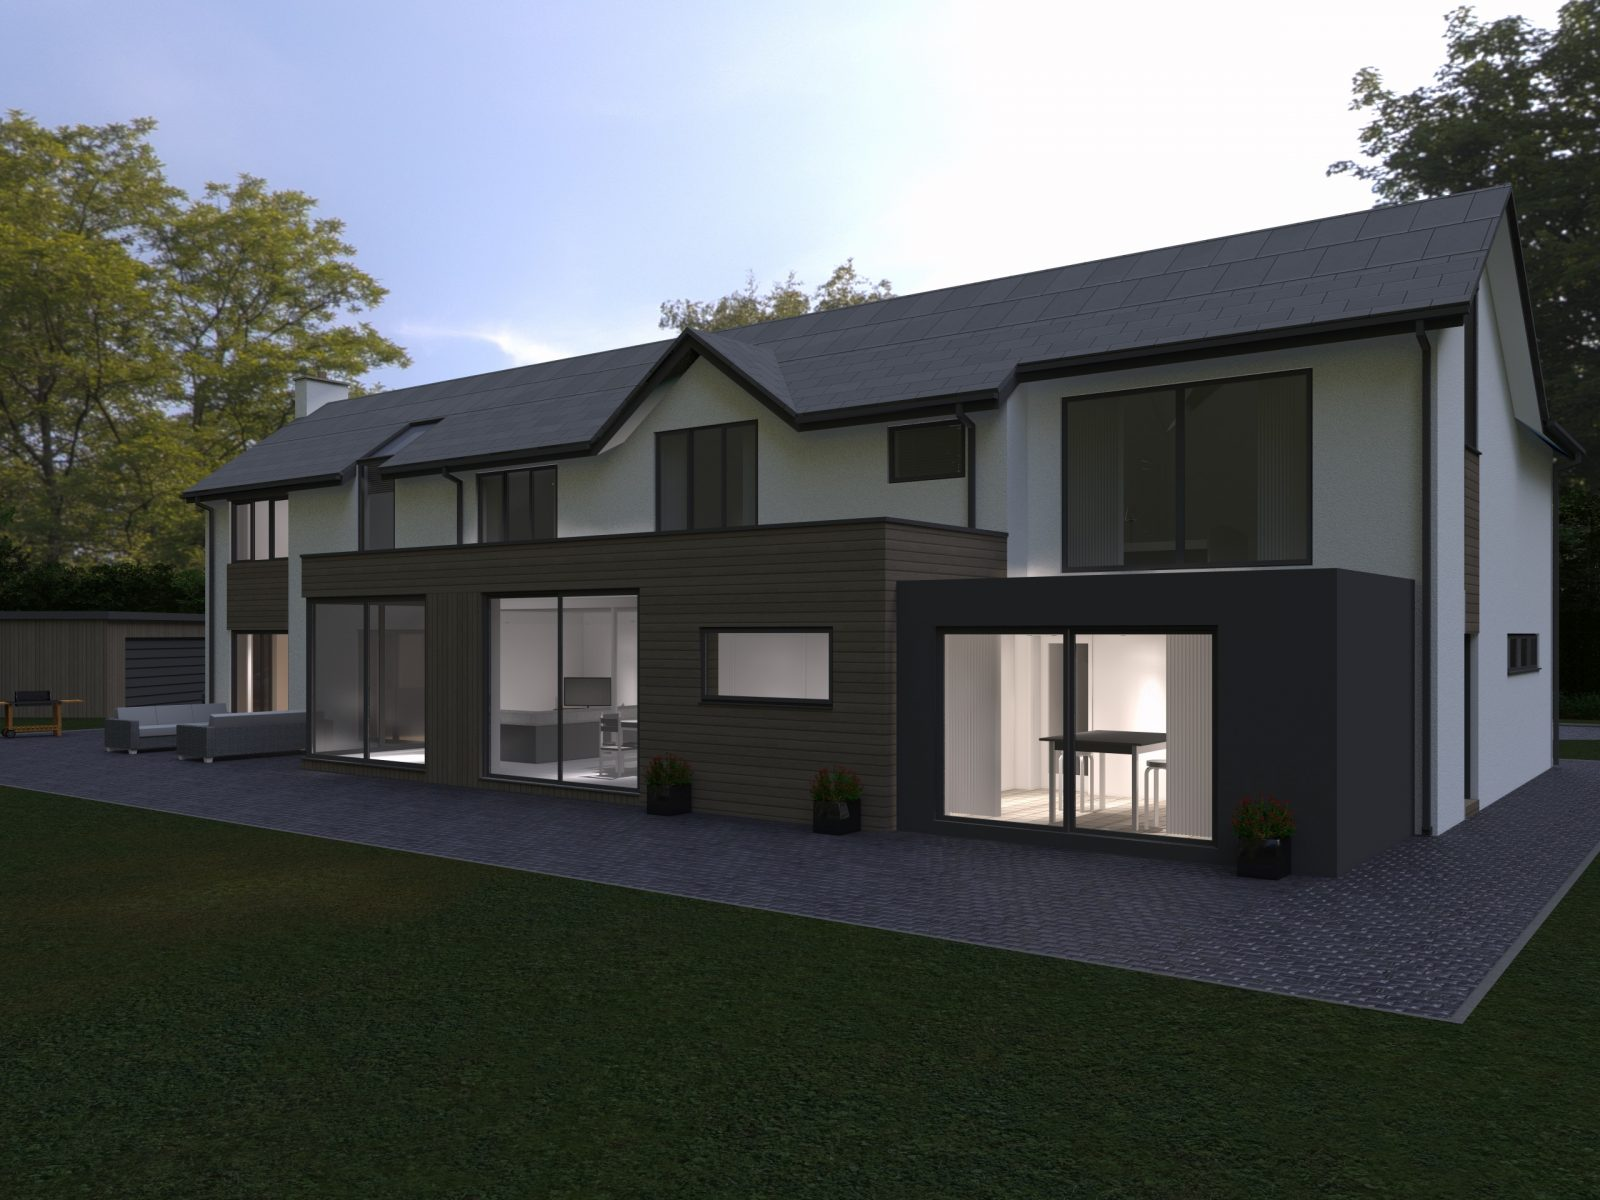 Proposed Rear View Brackenwood, Brocton - Lime Architecture